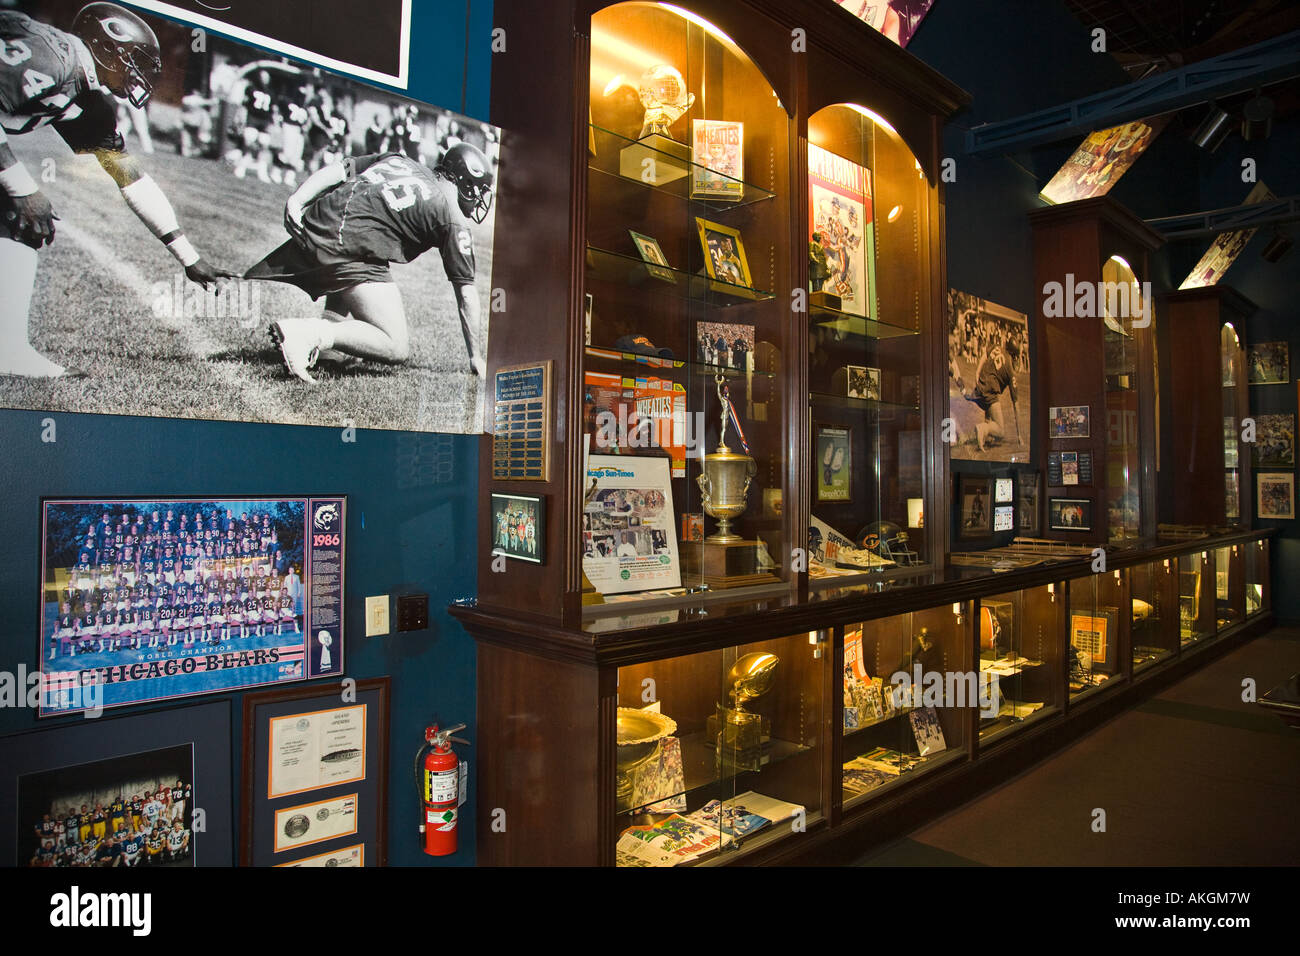 ILLINOIS Aurora Walter Payton museum in Roundhouse restaurant and meeting facility interior trophies photos - Stock Image